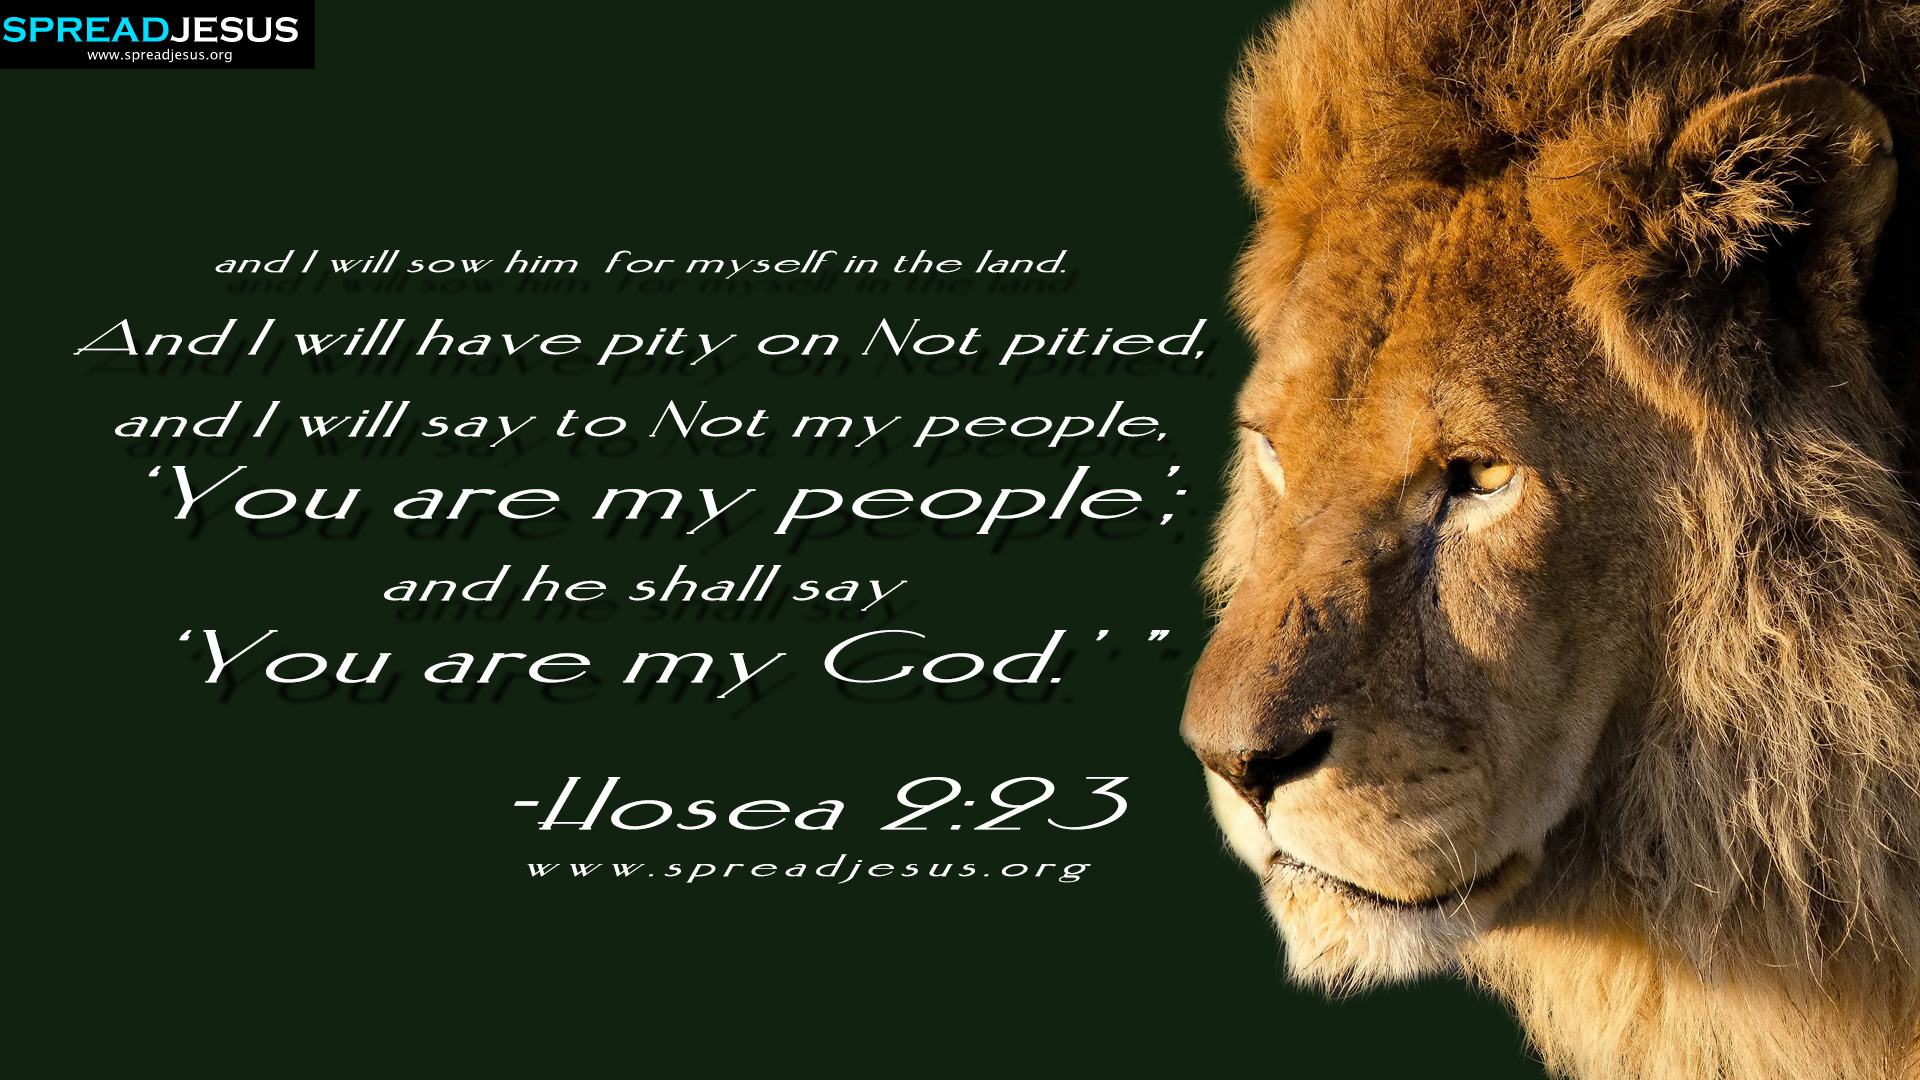 "BIBLE QUOTES HD-WALLPAPERS -and I will sow him for myself in the land. And I will have pity on Not pitied, and I will say to Not my people, ""You are my people""; and he shall say ""You are my God.""-Hosea 2:23"